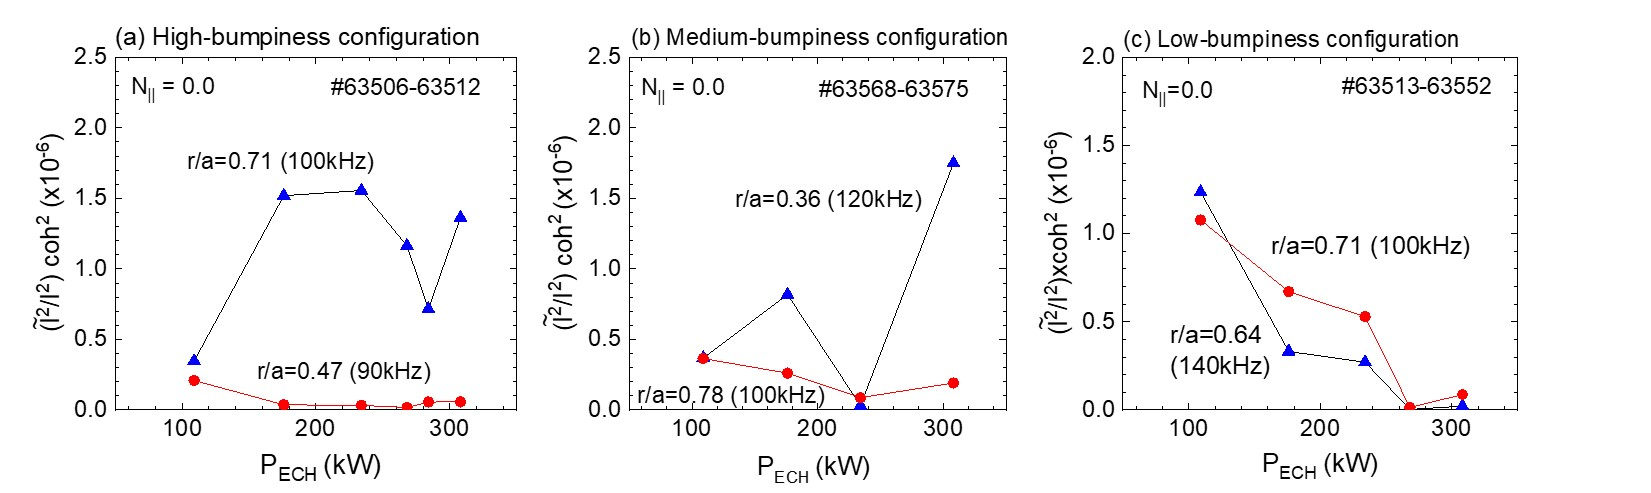 Amplitudes of EP-driven MHD modes for (a) high-, (b) medium- and (c) low-bumpiness configurations as a function of ECH power.